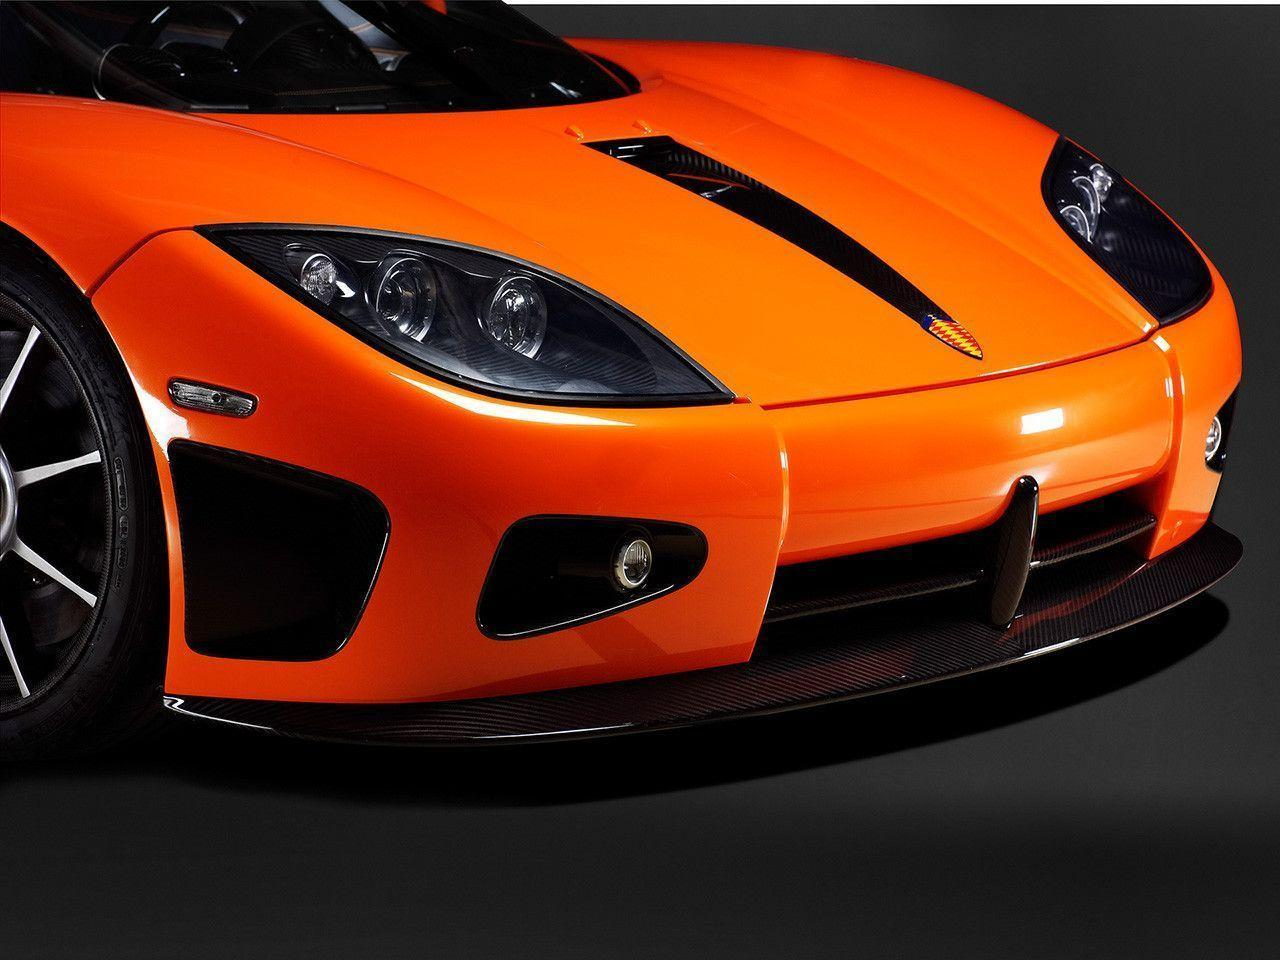 Koenigsegg Ccx Front Section Wallpapers 1280x960PX ~ Wallpapers